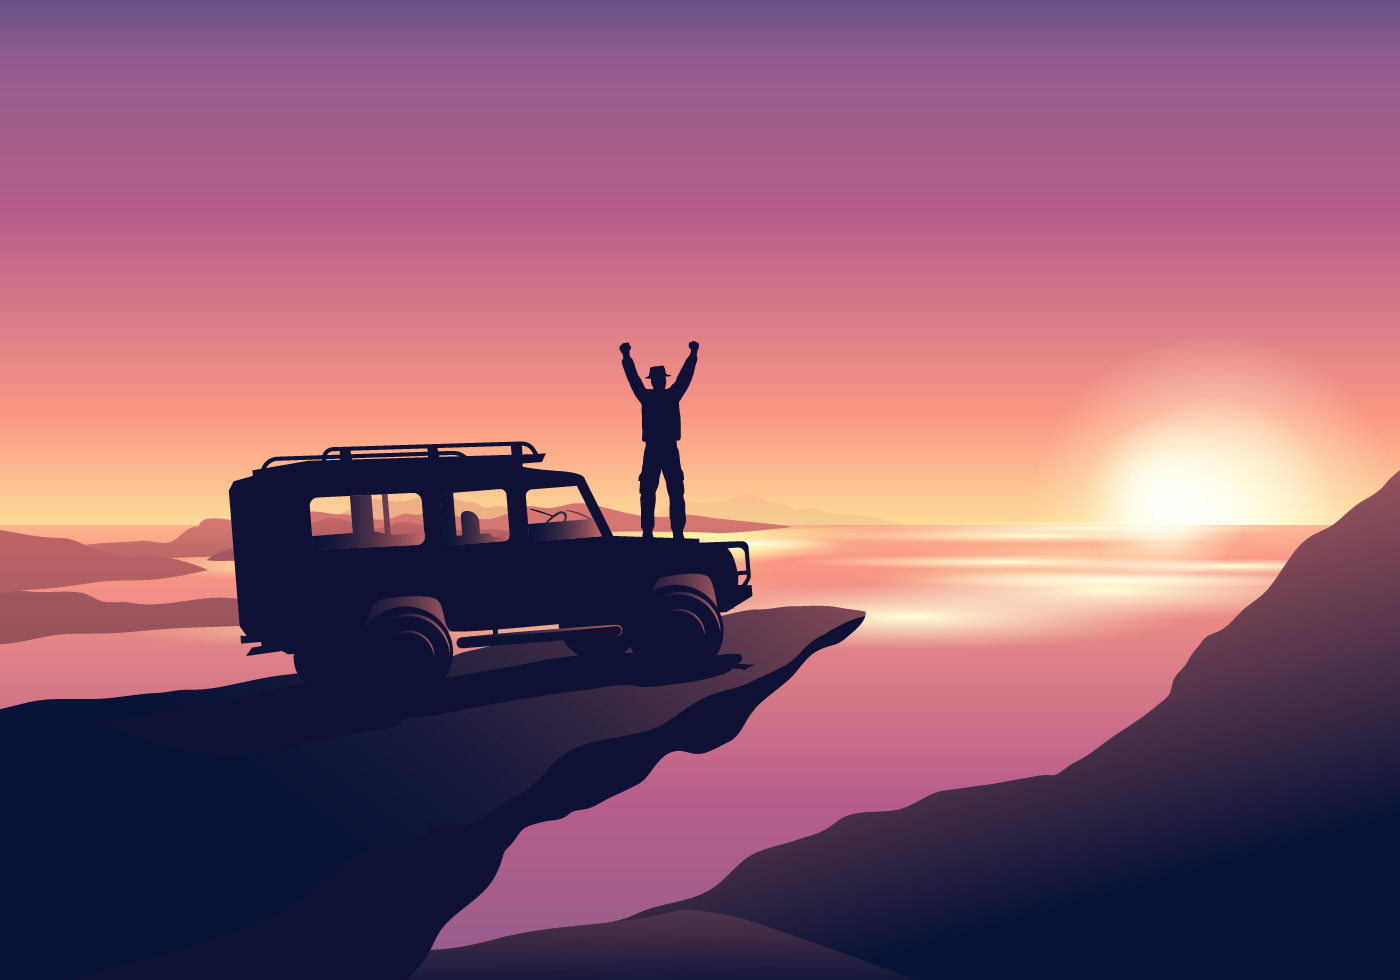 Offroad Adventure Download Free Vectors Clipart